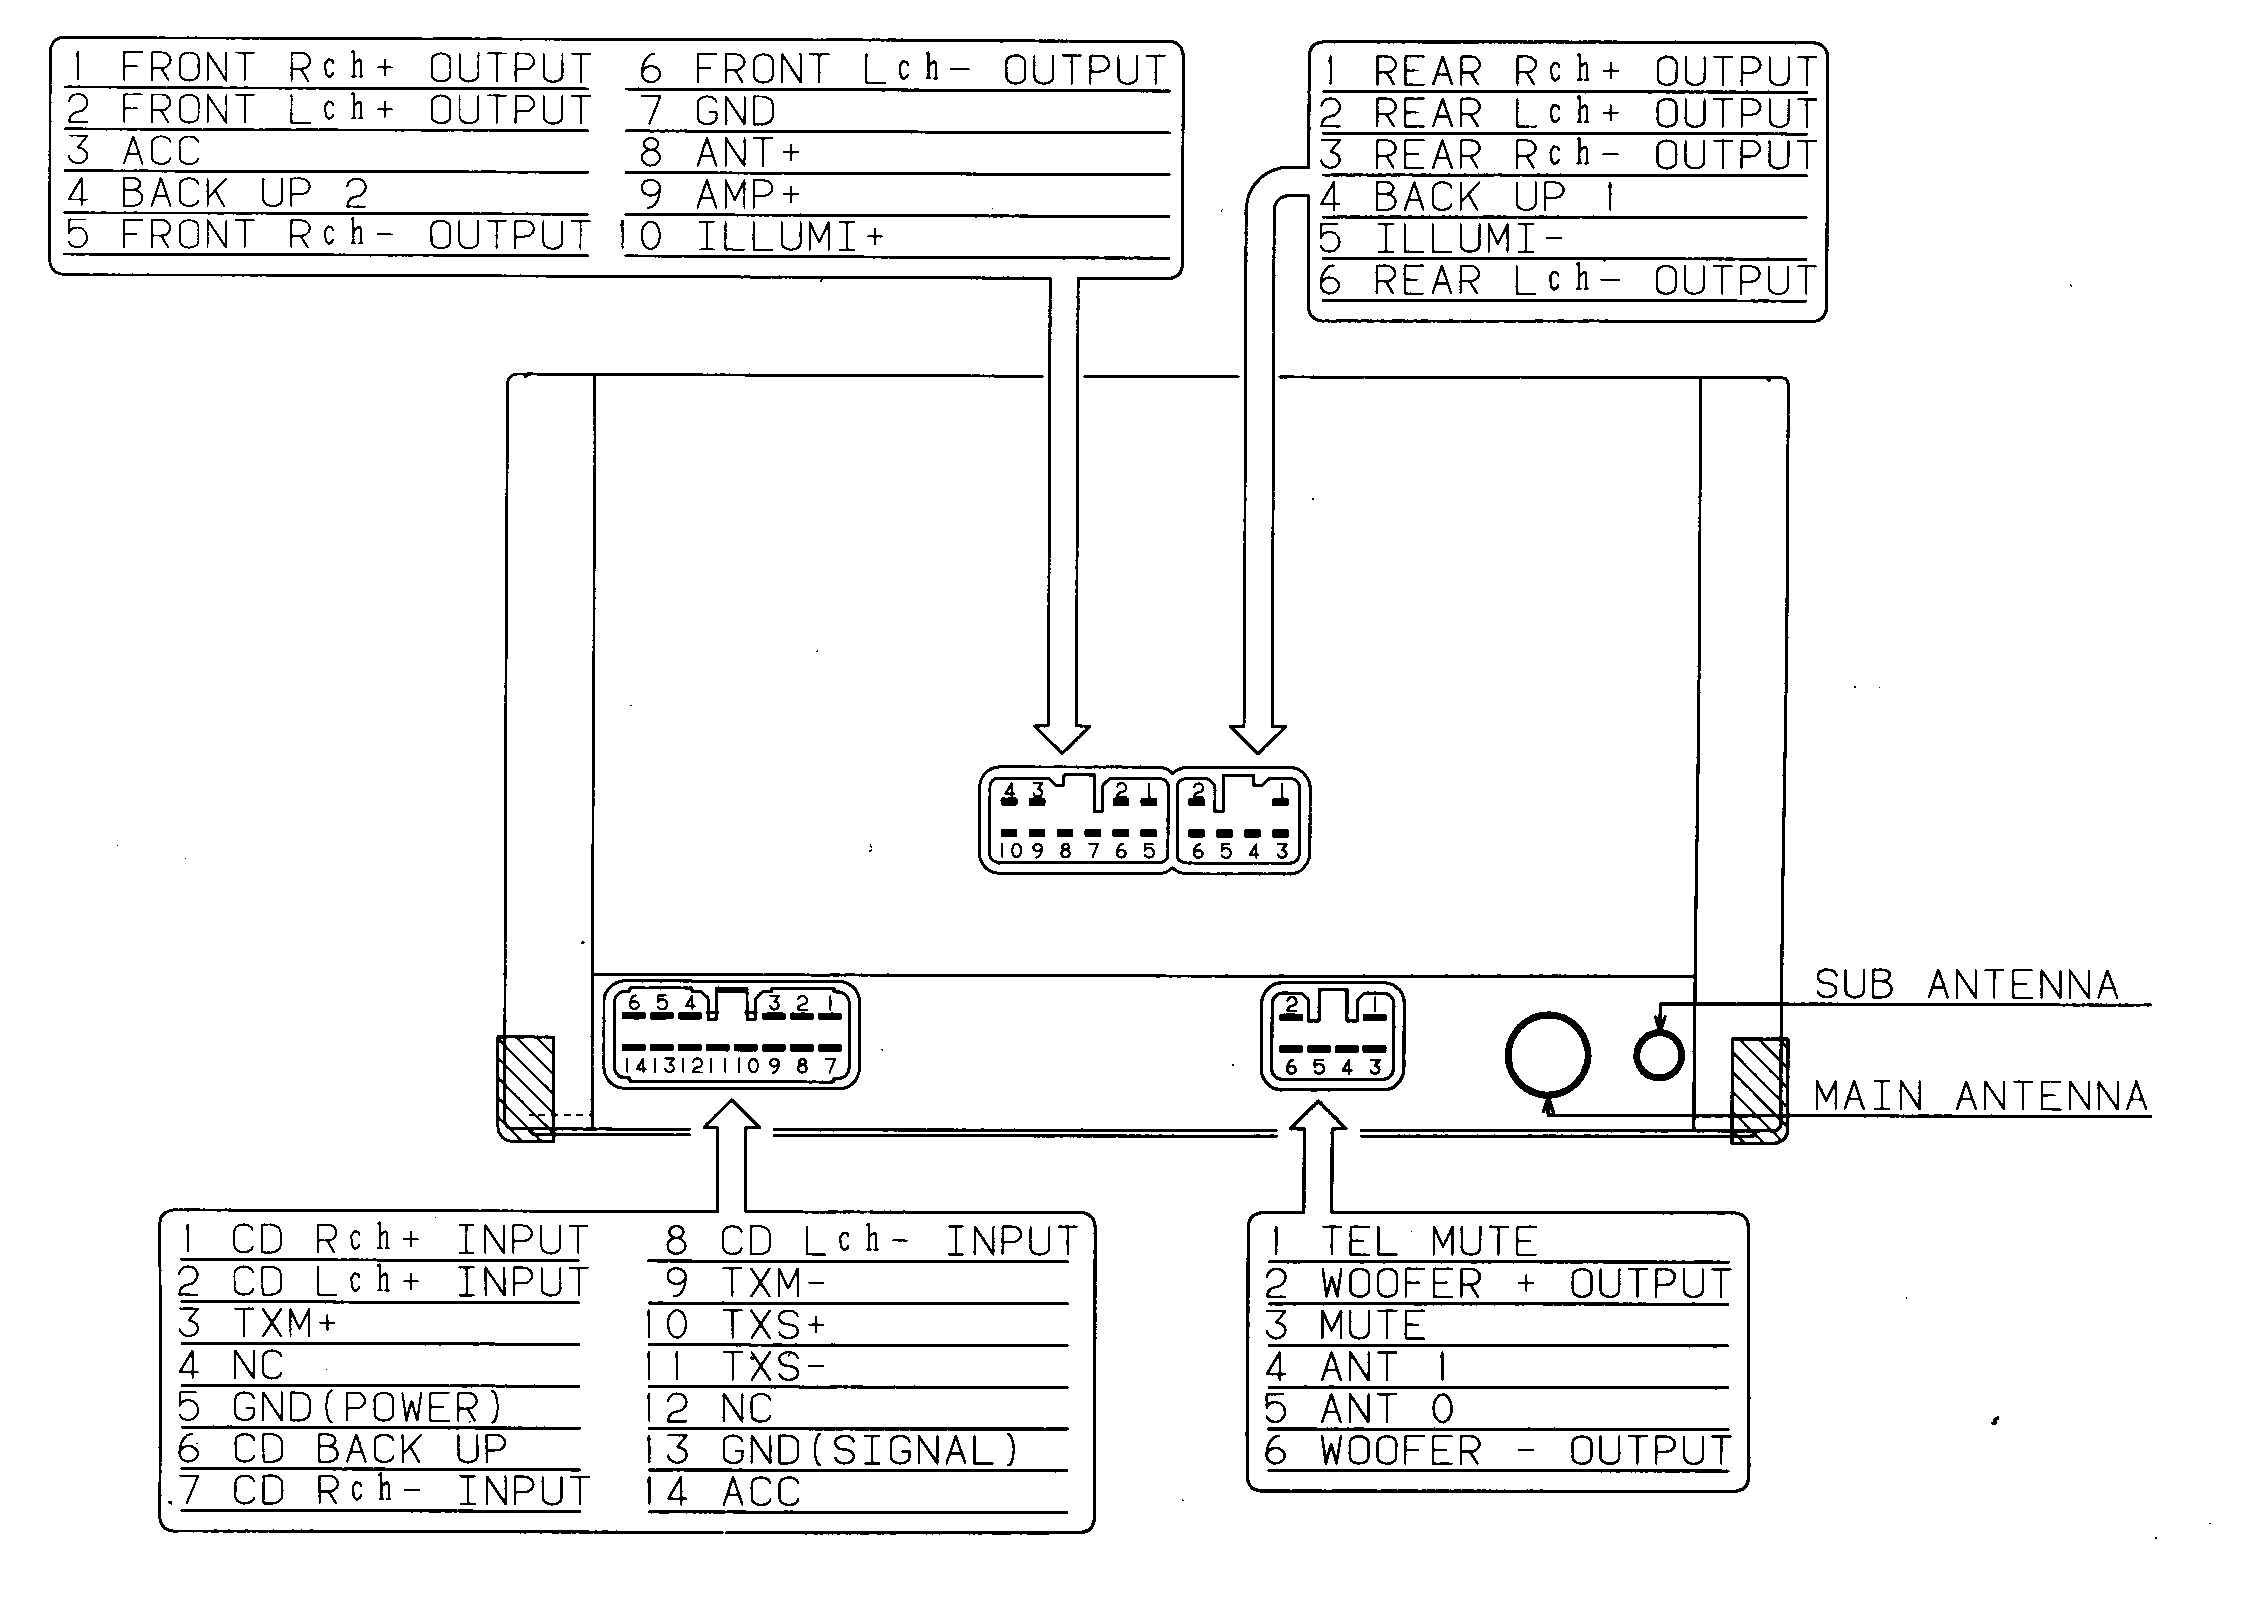 Lexus car stereo wiring diagram harness pinout connector wire lexus rx330 radio wiring diagram lexus rx330 parts diagram 2002 Lexus RX300 Interior at couponss.co